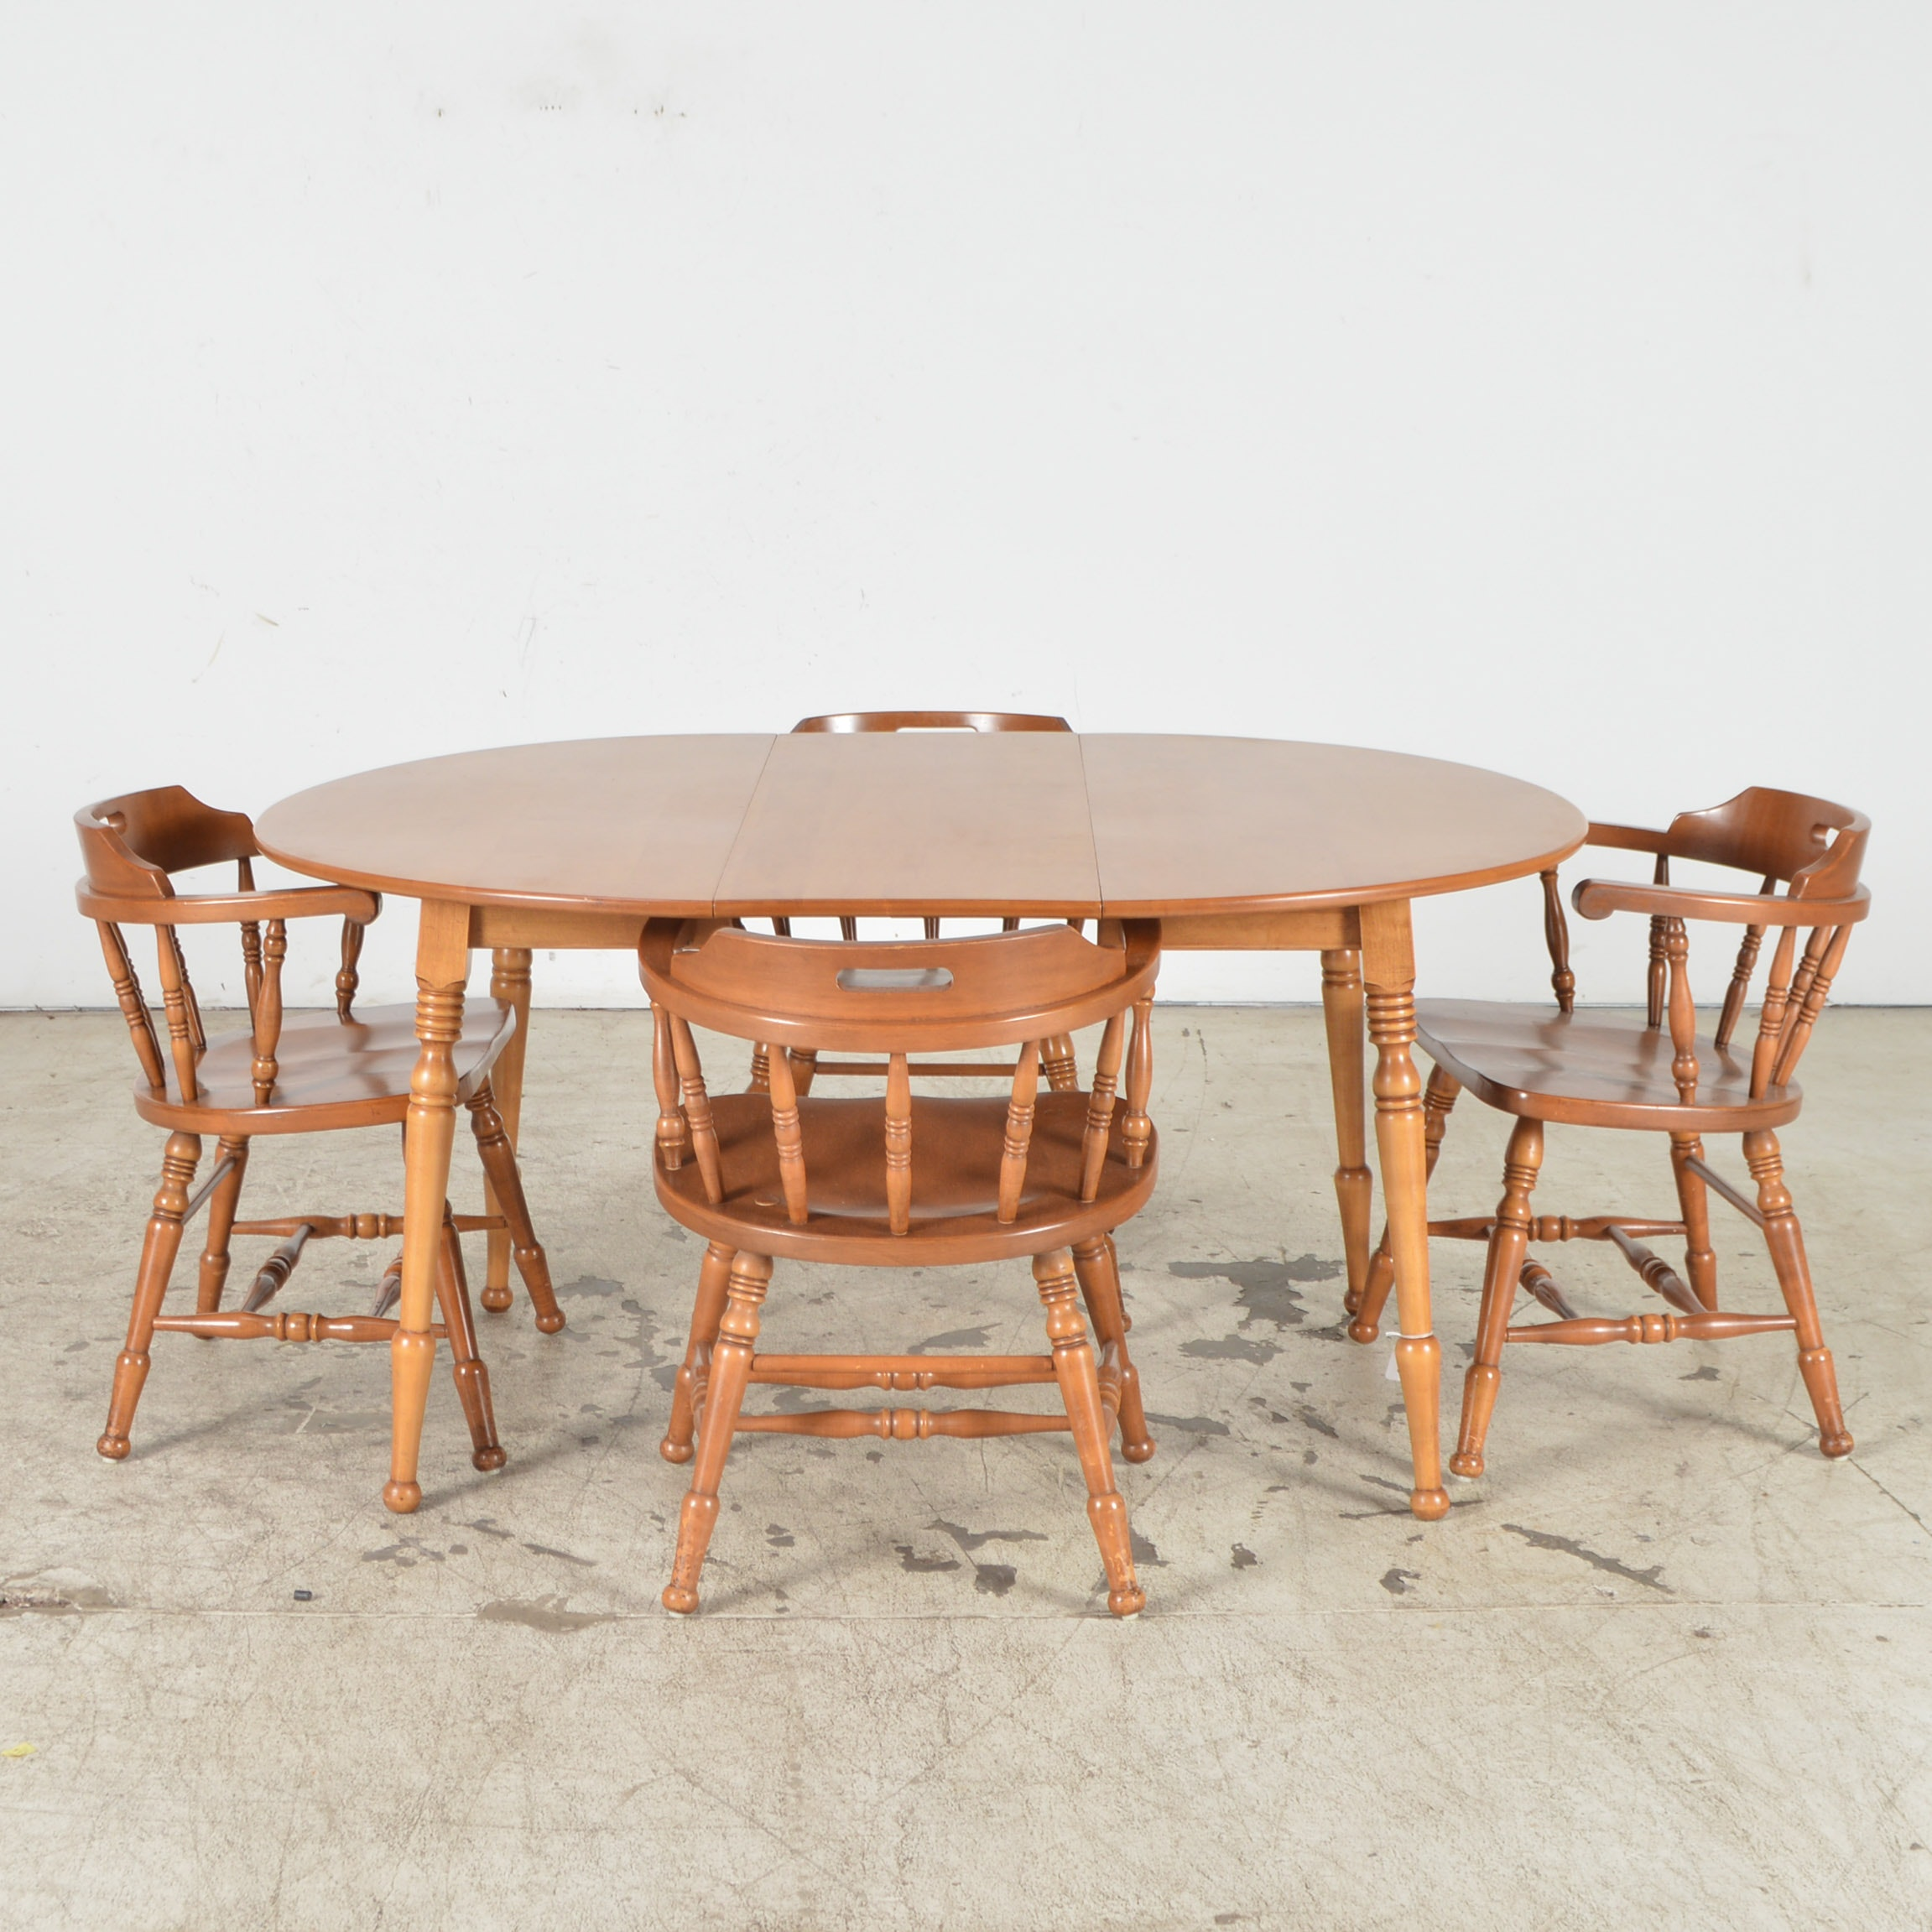 Gentil S. Bent U0026 Bros. Colonial Dining Table U0026 Chairs ...